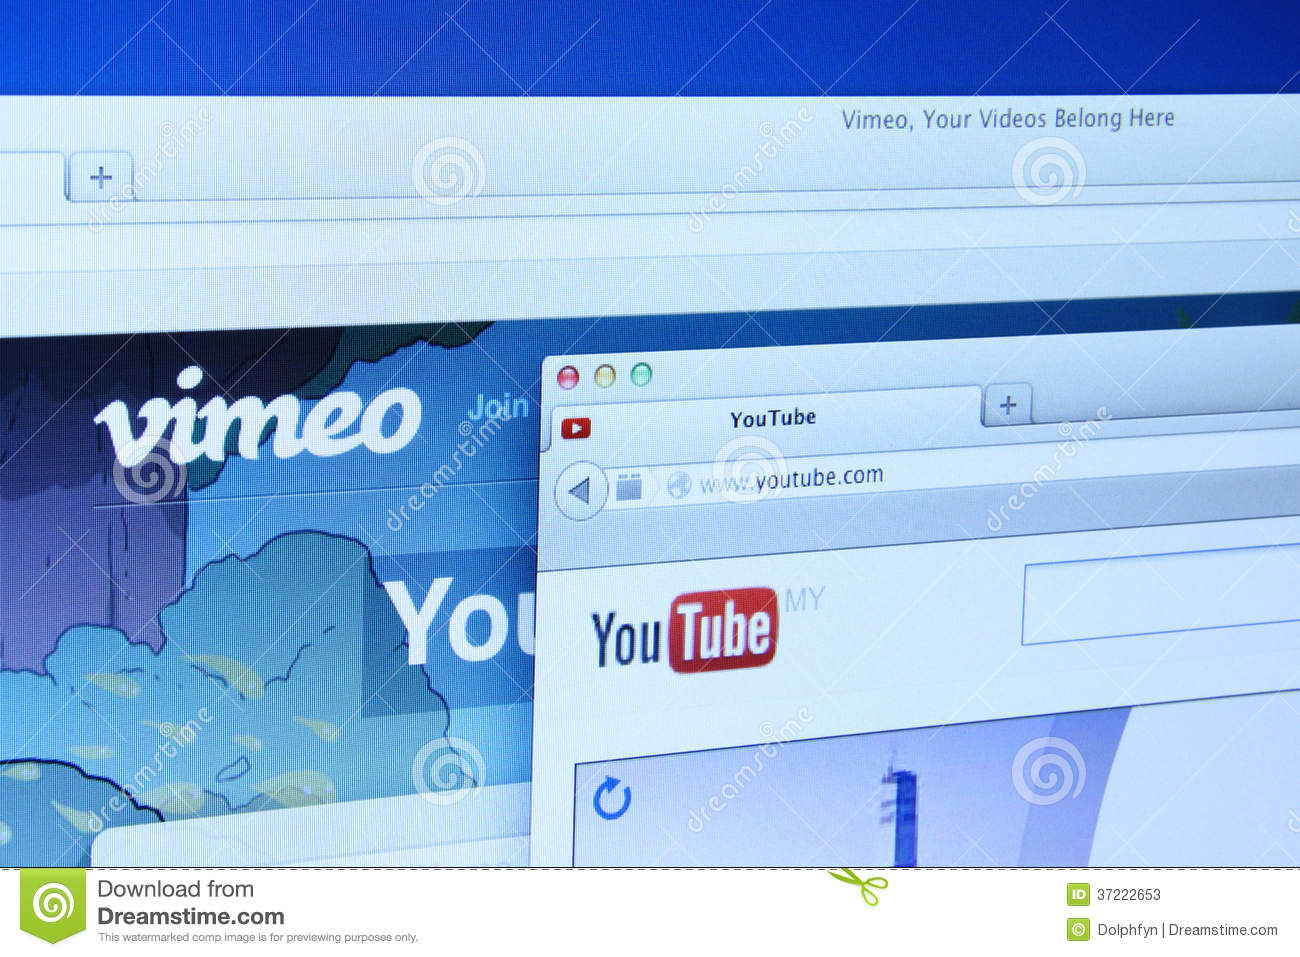 how to download a video not on youtube or vimeo